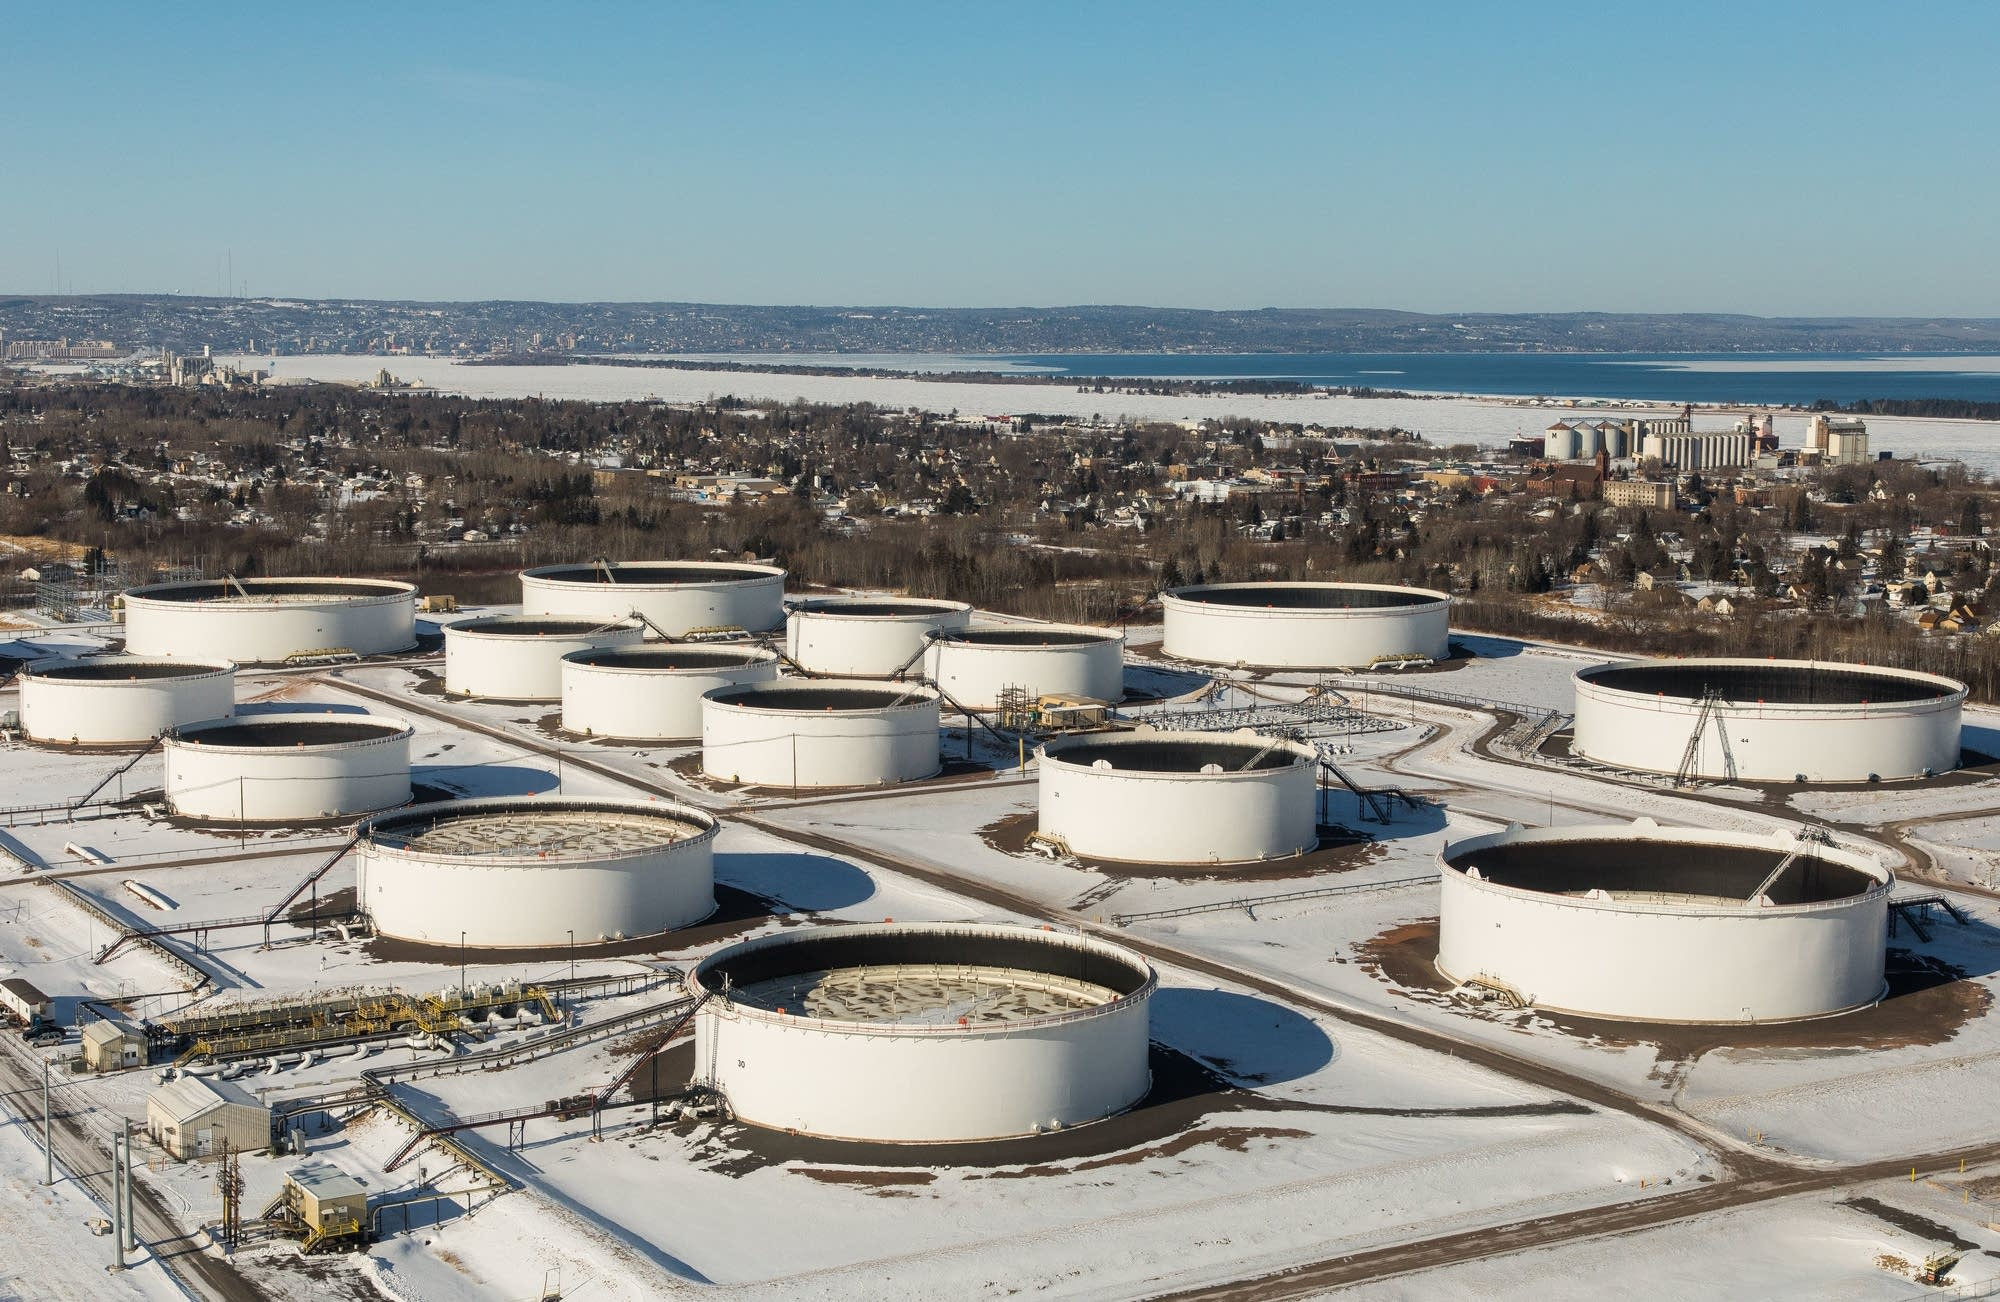 Enbridge's Superior Terminal receives the majority of its oil from Canada.